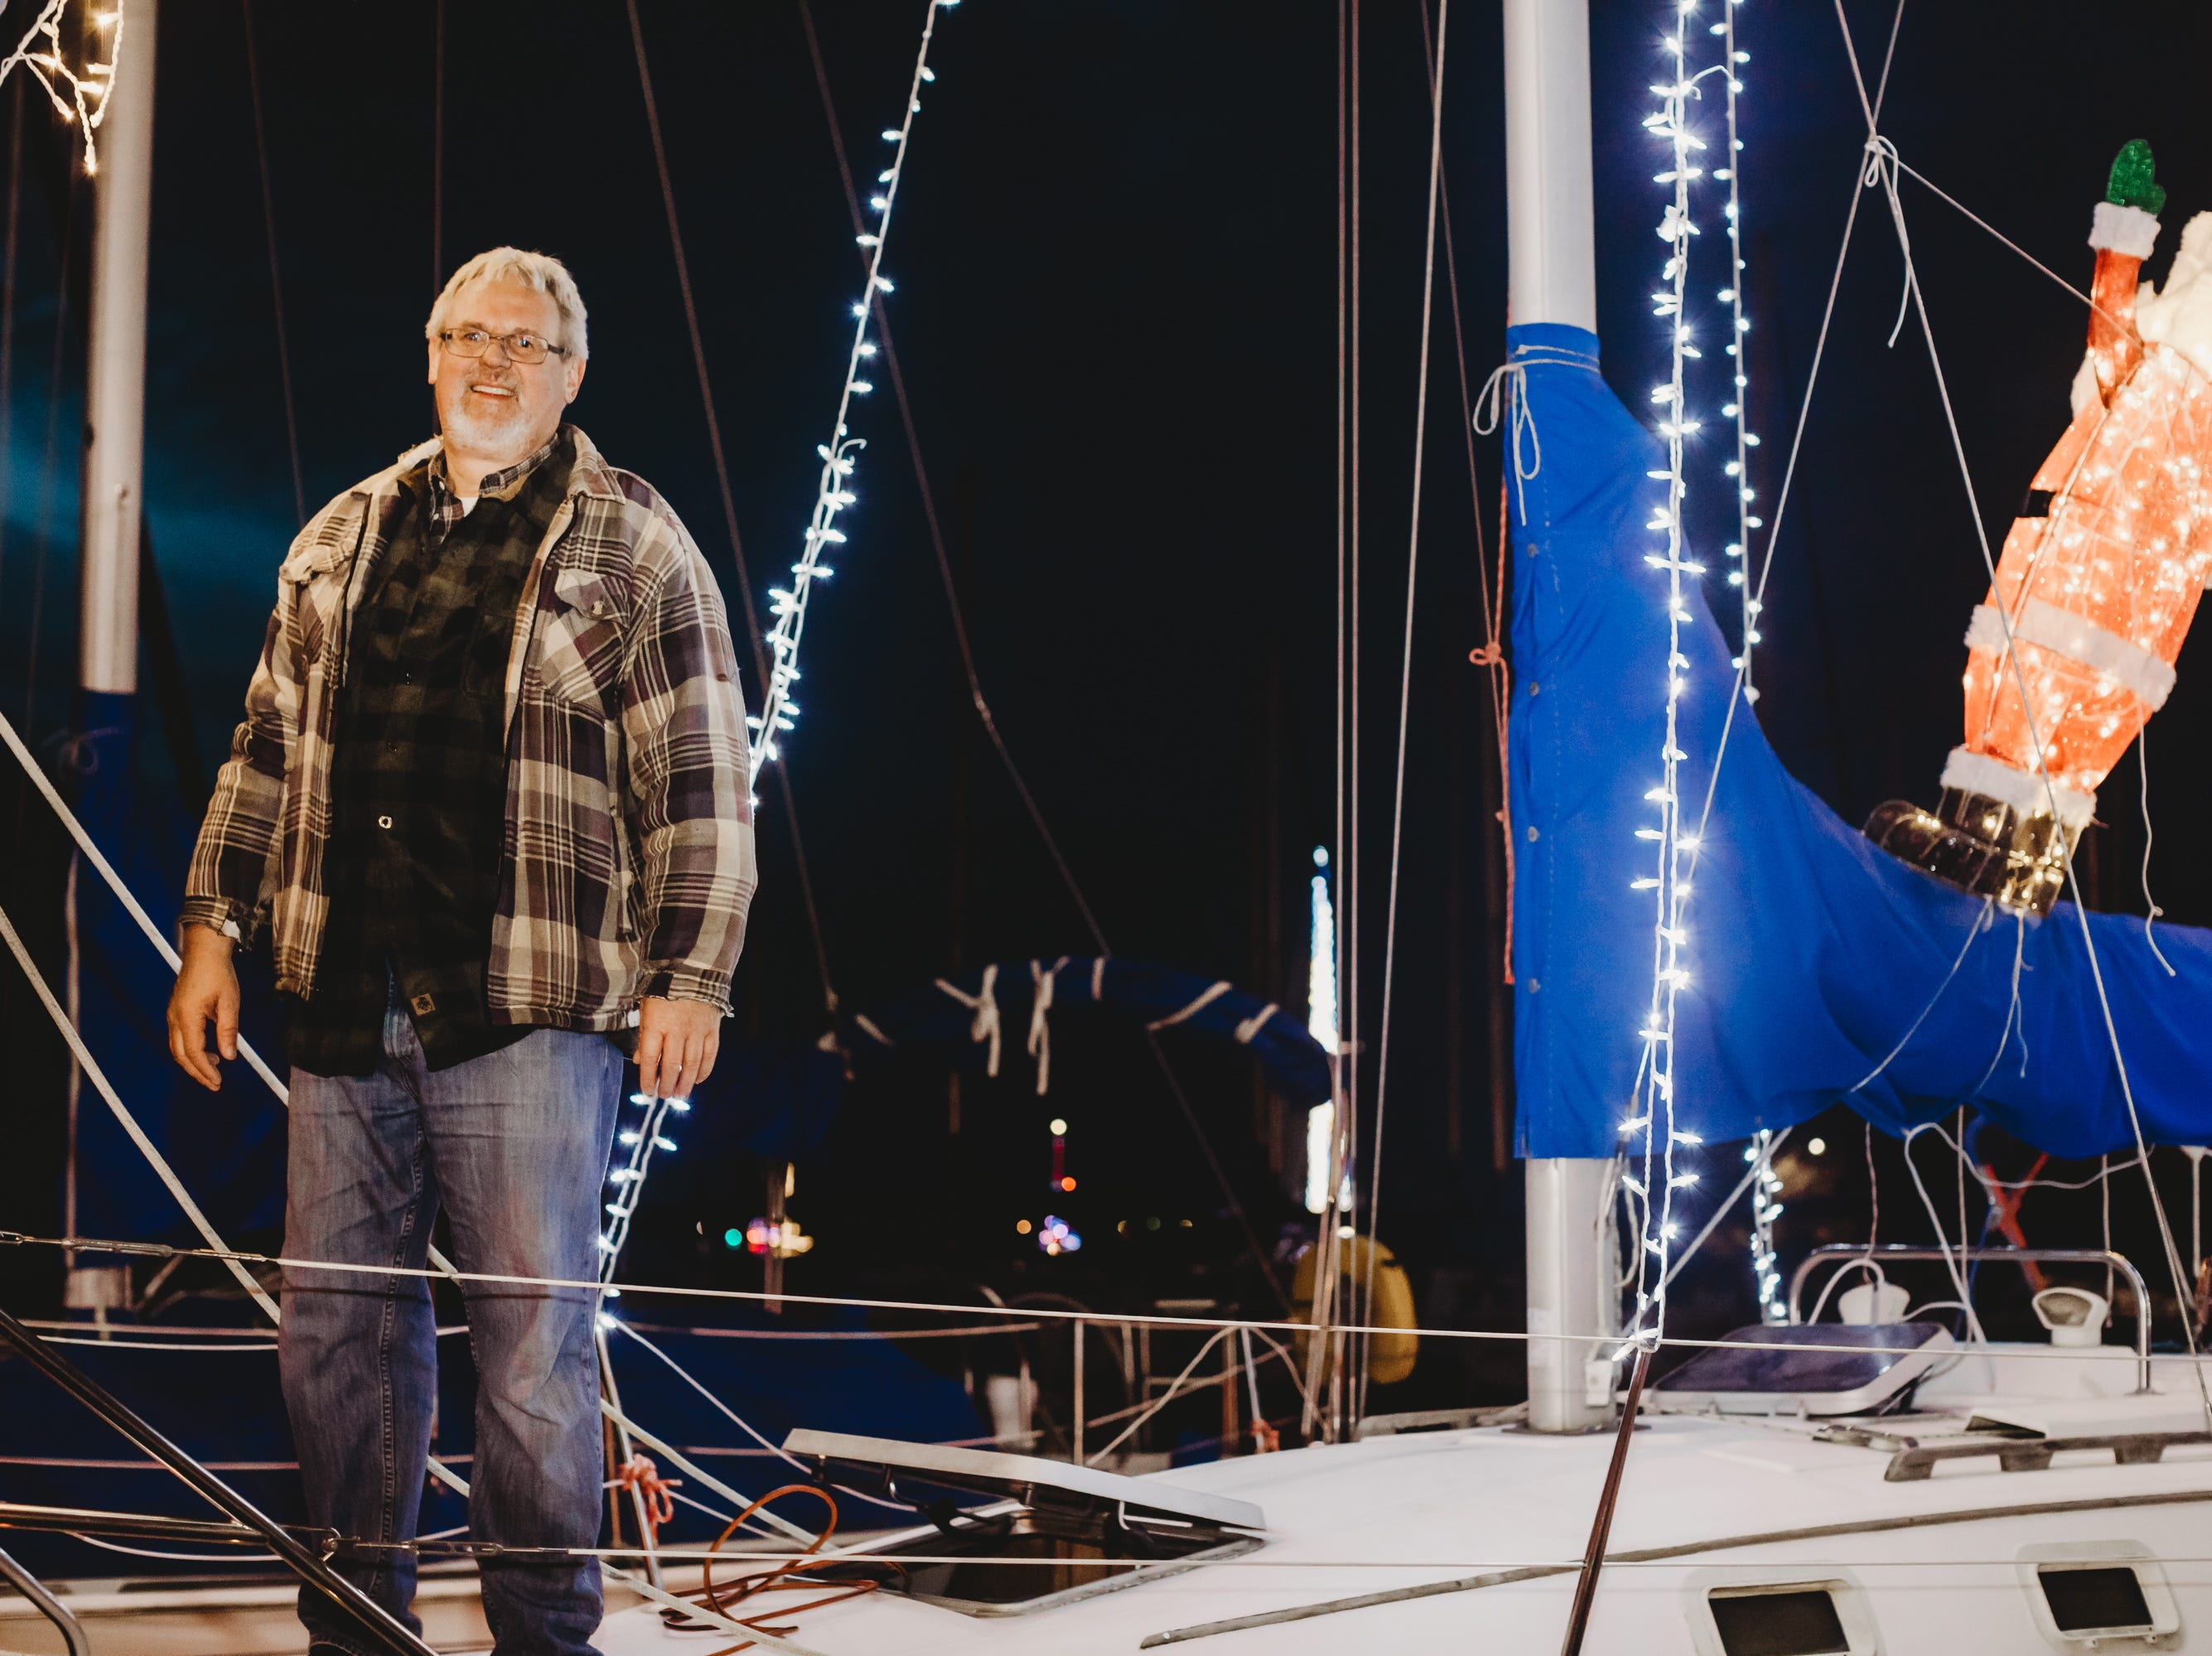 Werner Lehmann on deck .The Western Carolina Sailing Club held their Cruising Fleet Annual Parade of Lights on Lake Hartwell in Anderson Friday, December 7, 2018.